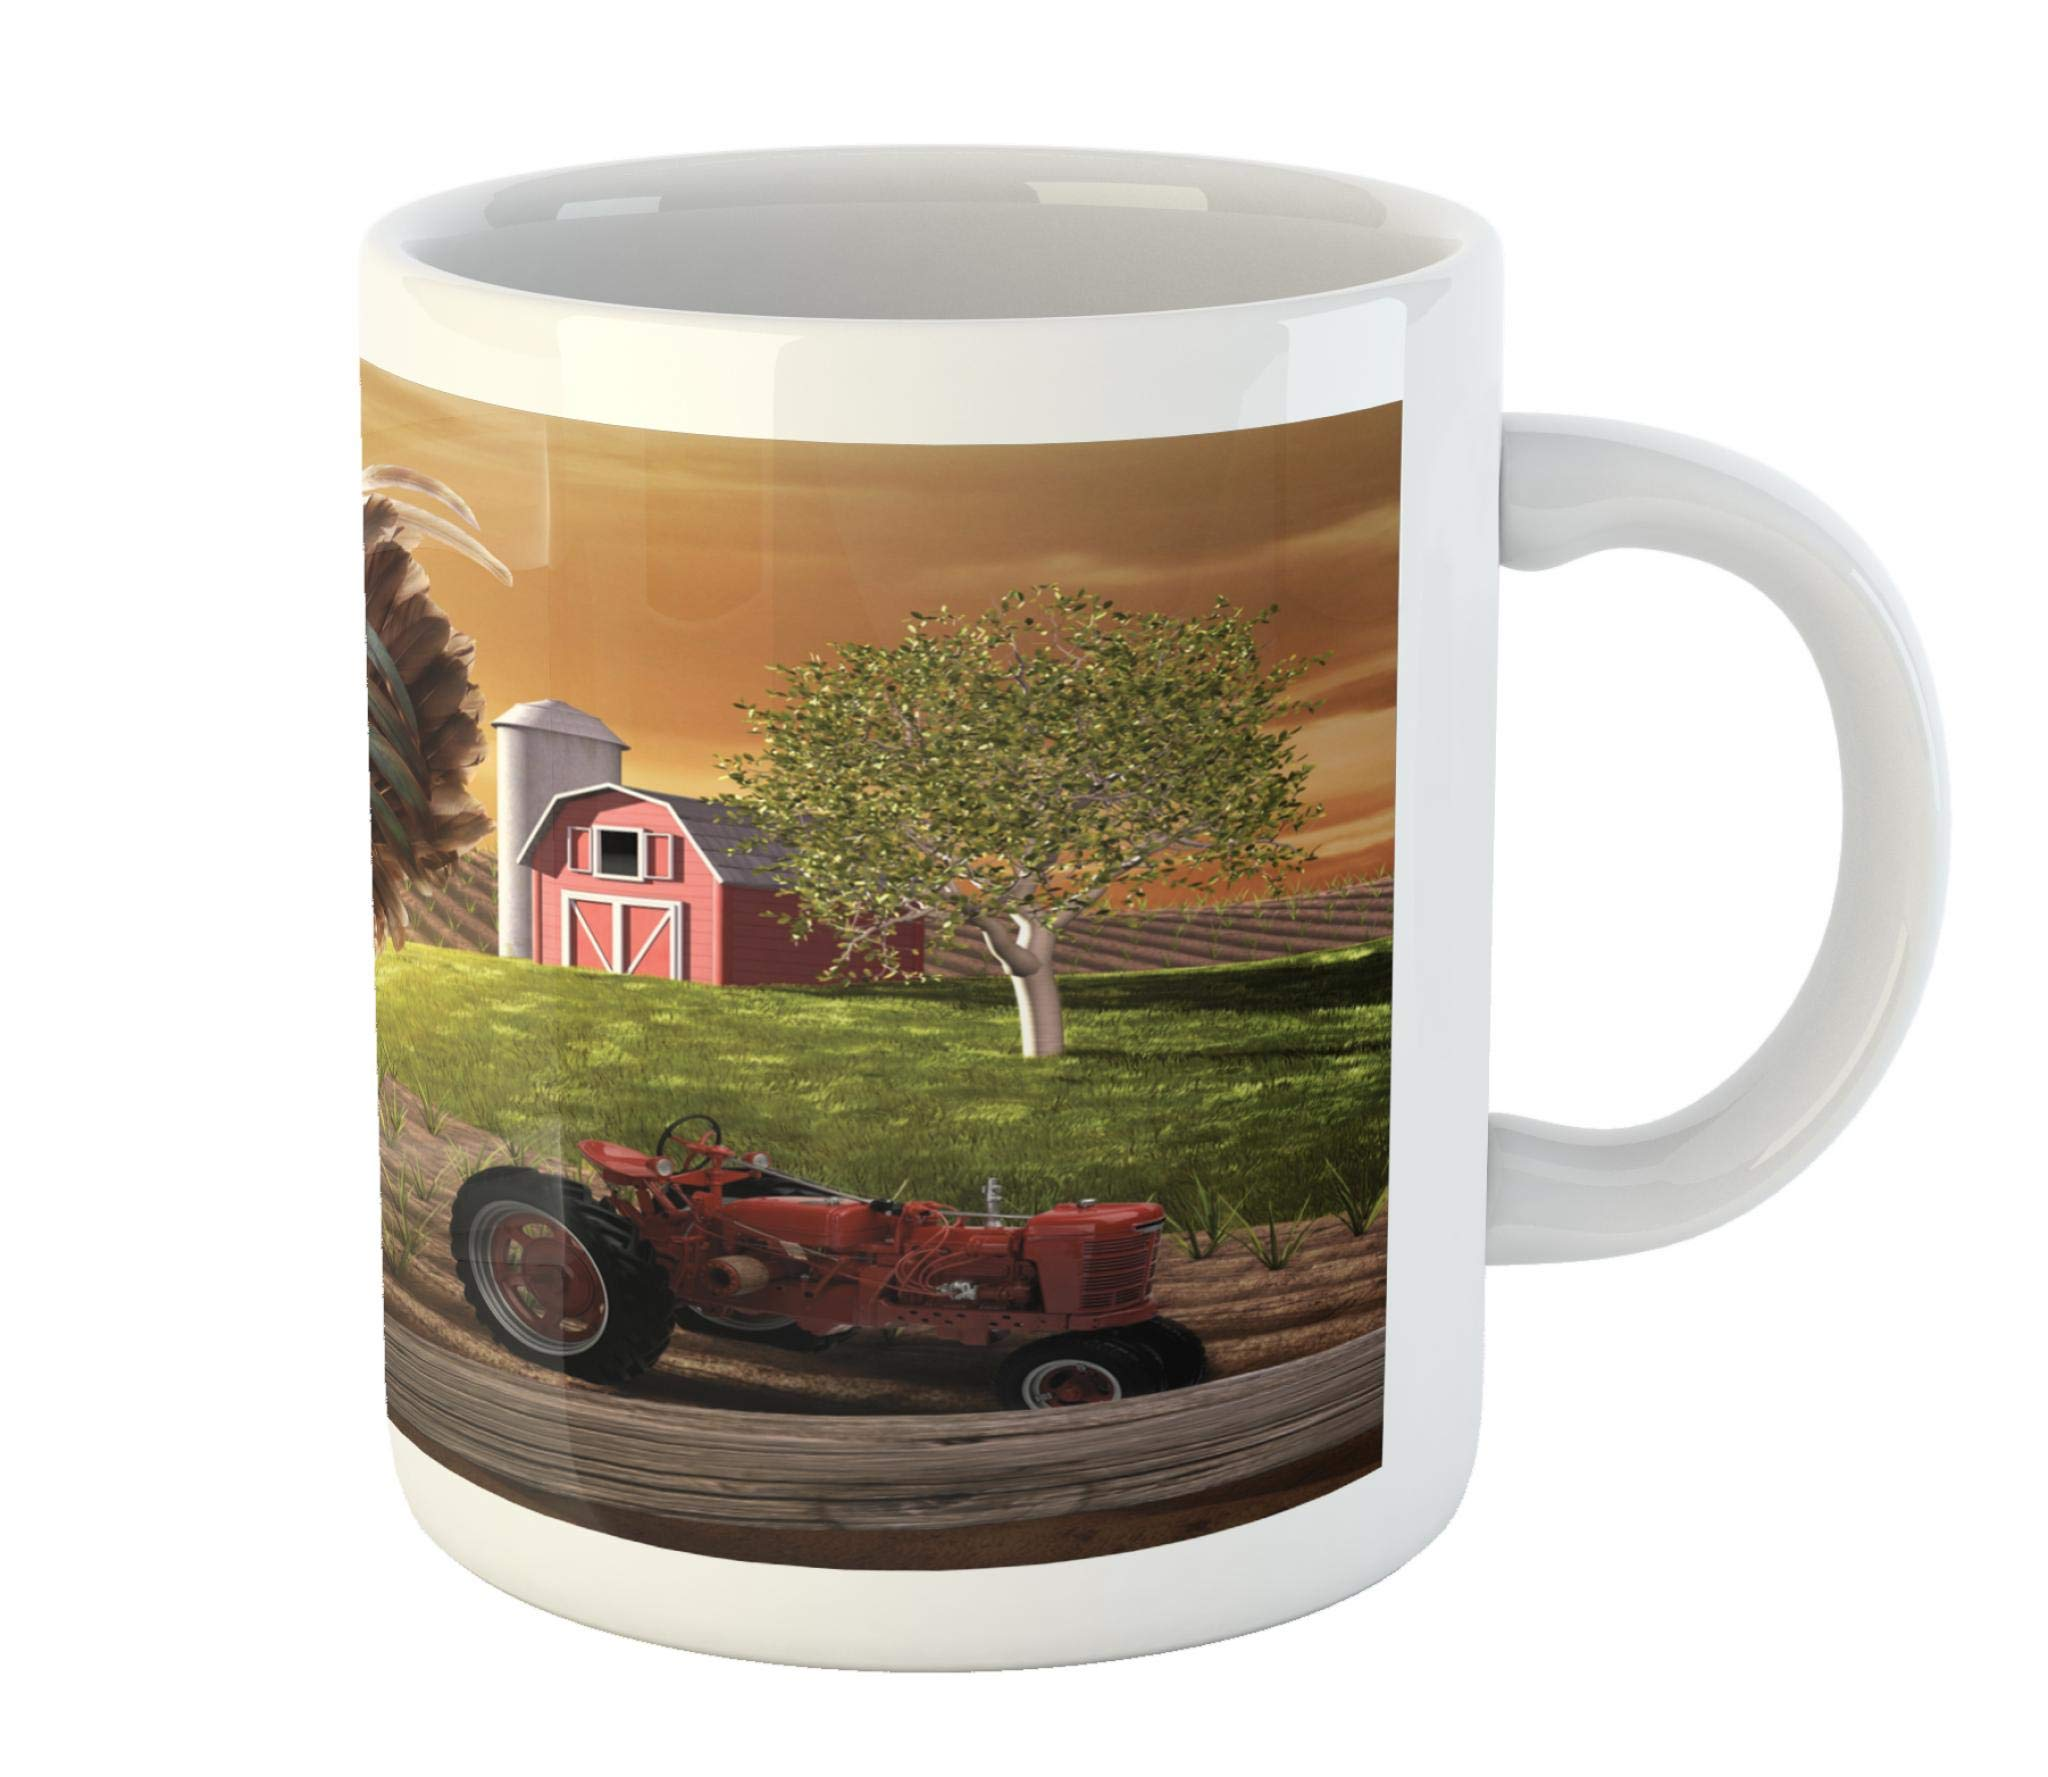 Lunarable Country Mug by, Farm Barn Yard Image with Rooster Animal Early Bird Nature and Rising Sun Print, Printed Ceramic Coffee Mug Water Tea Drinks Cup, Pale Brown Red